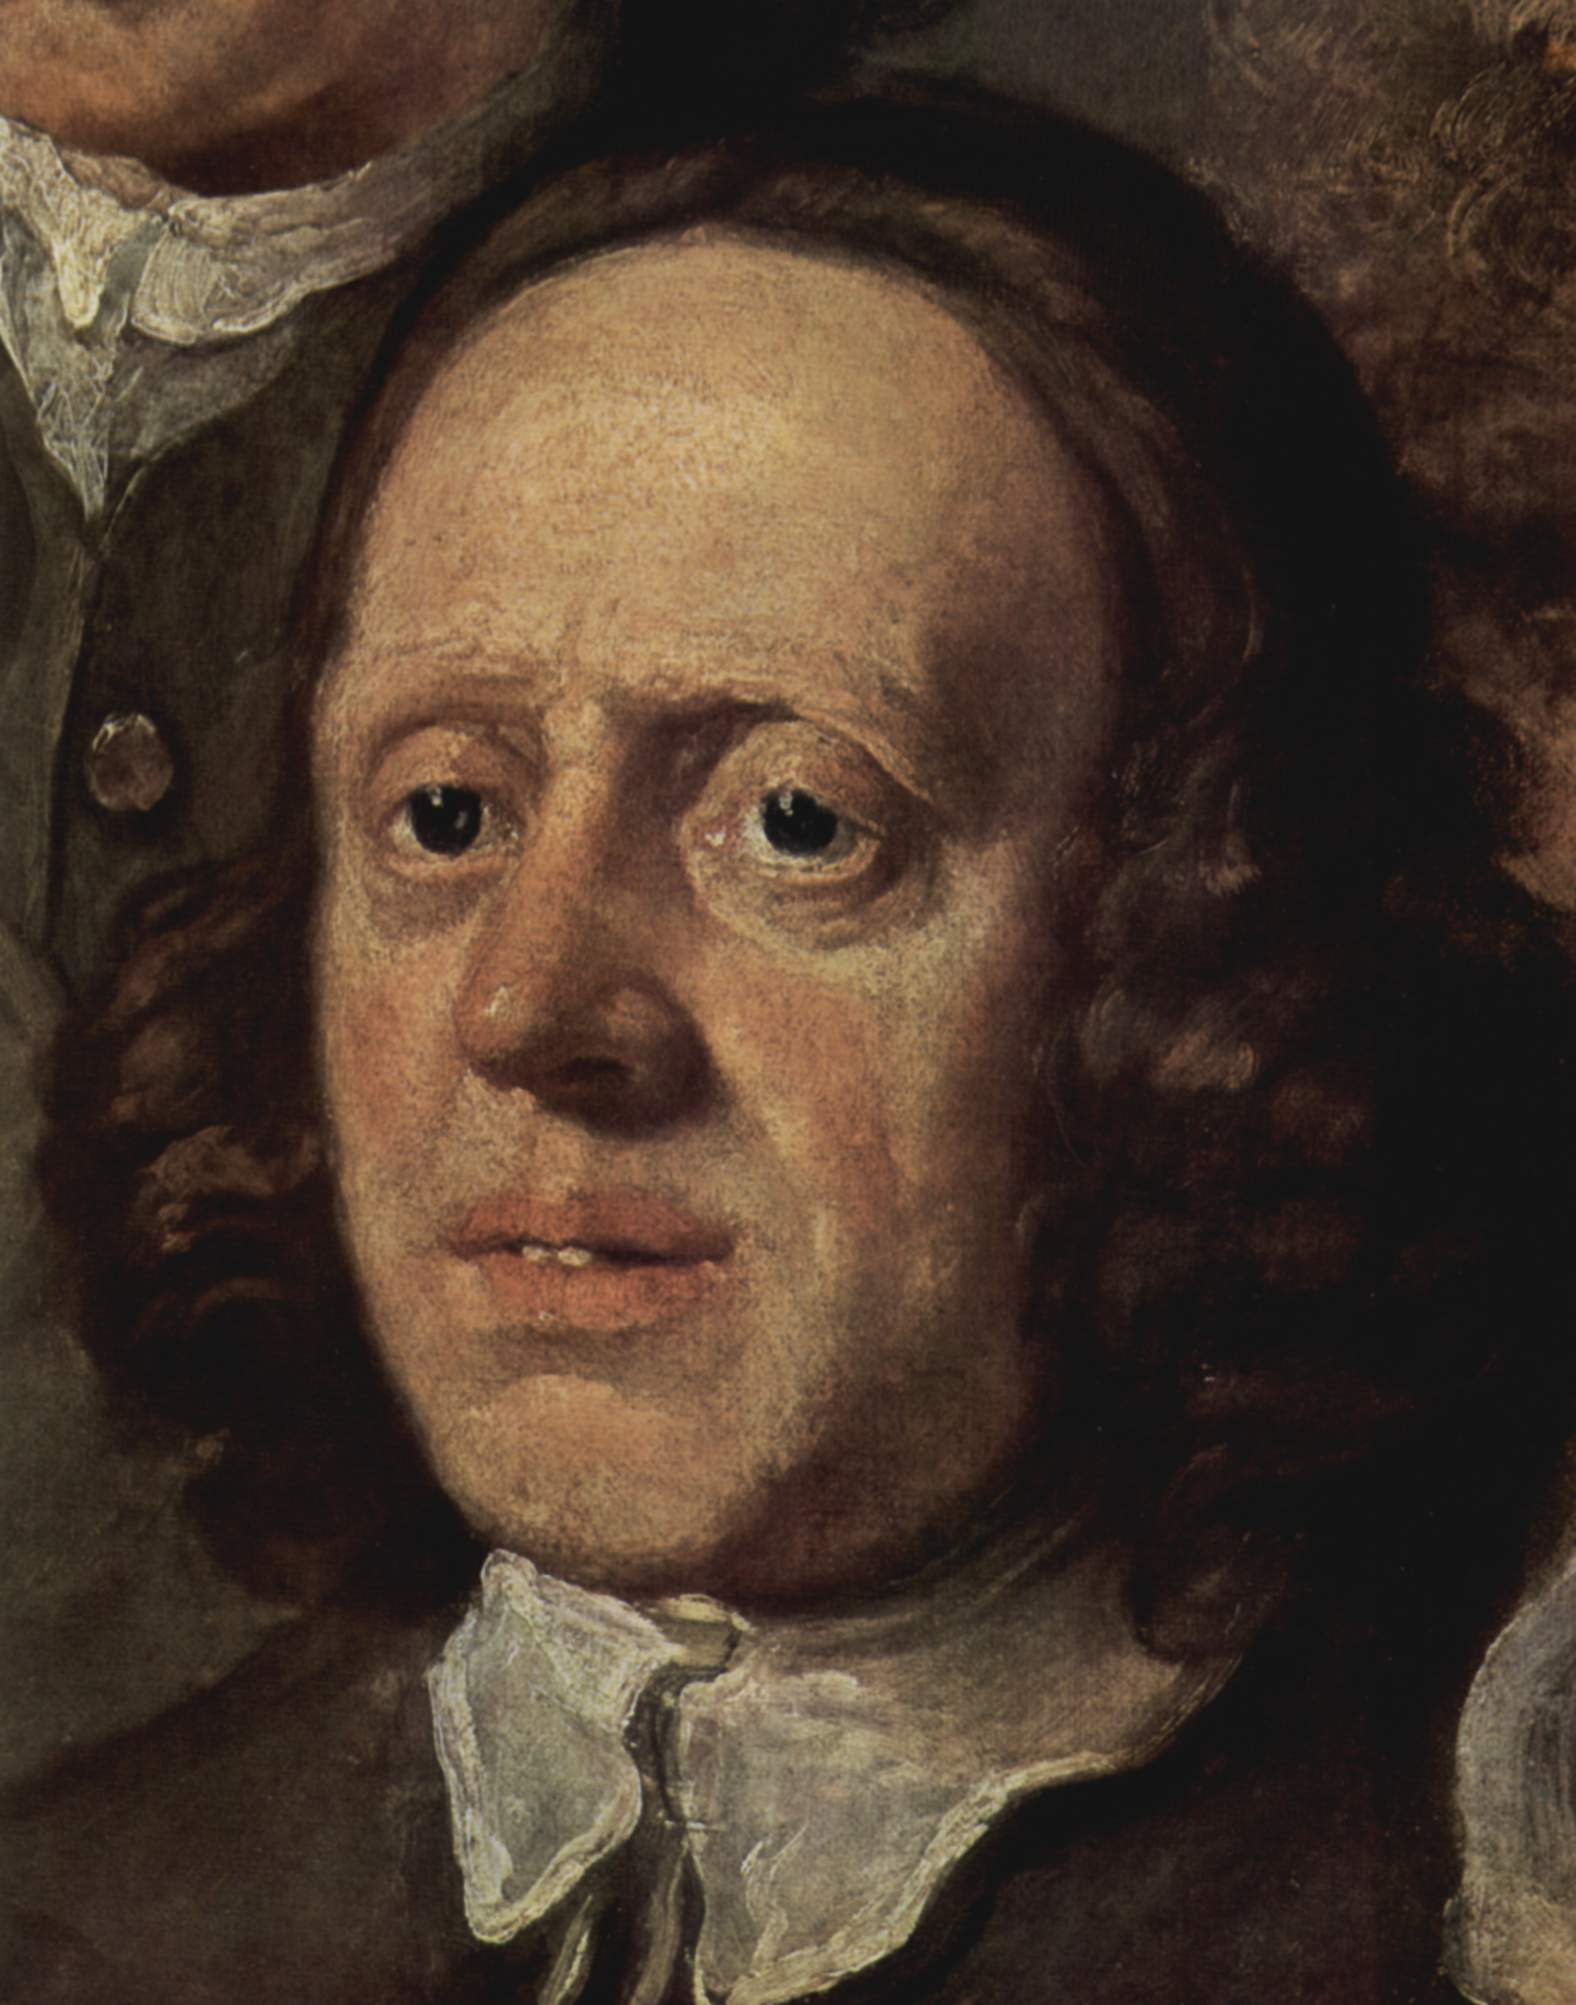 http://upload.wikimedia.org/wikipedia/commons/a/a6/William_Hogarth_011.jpg